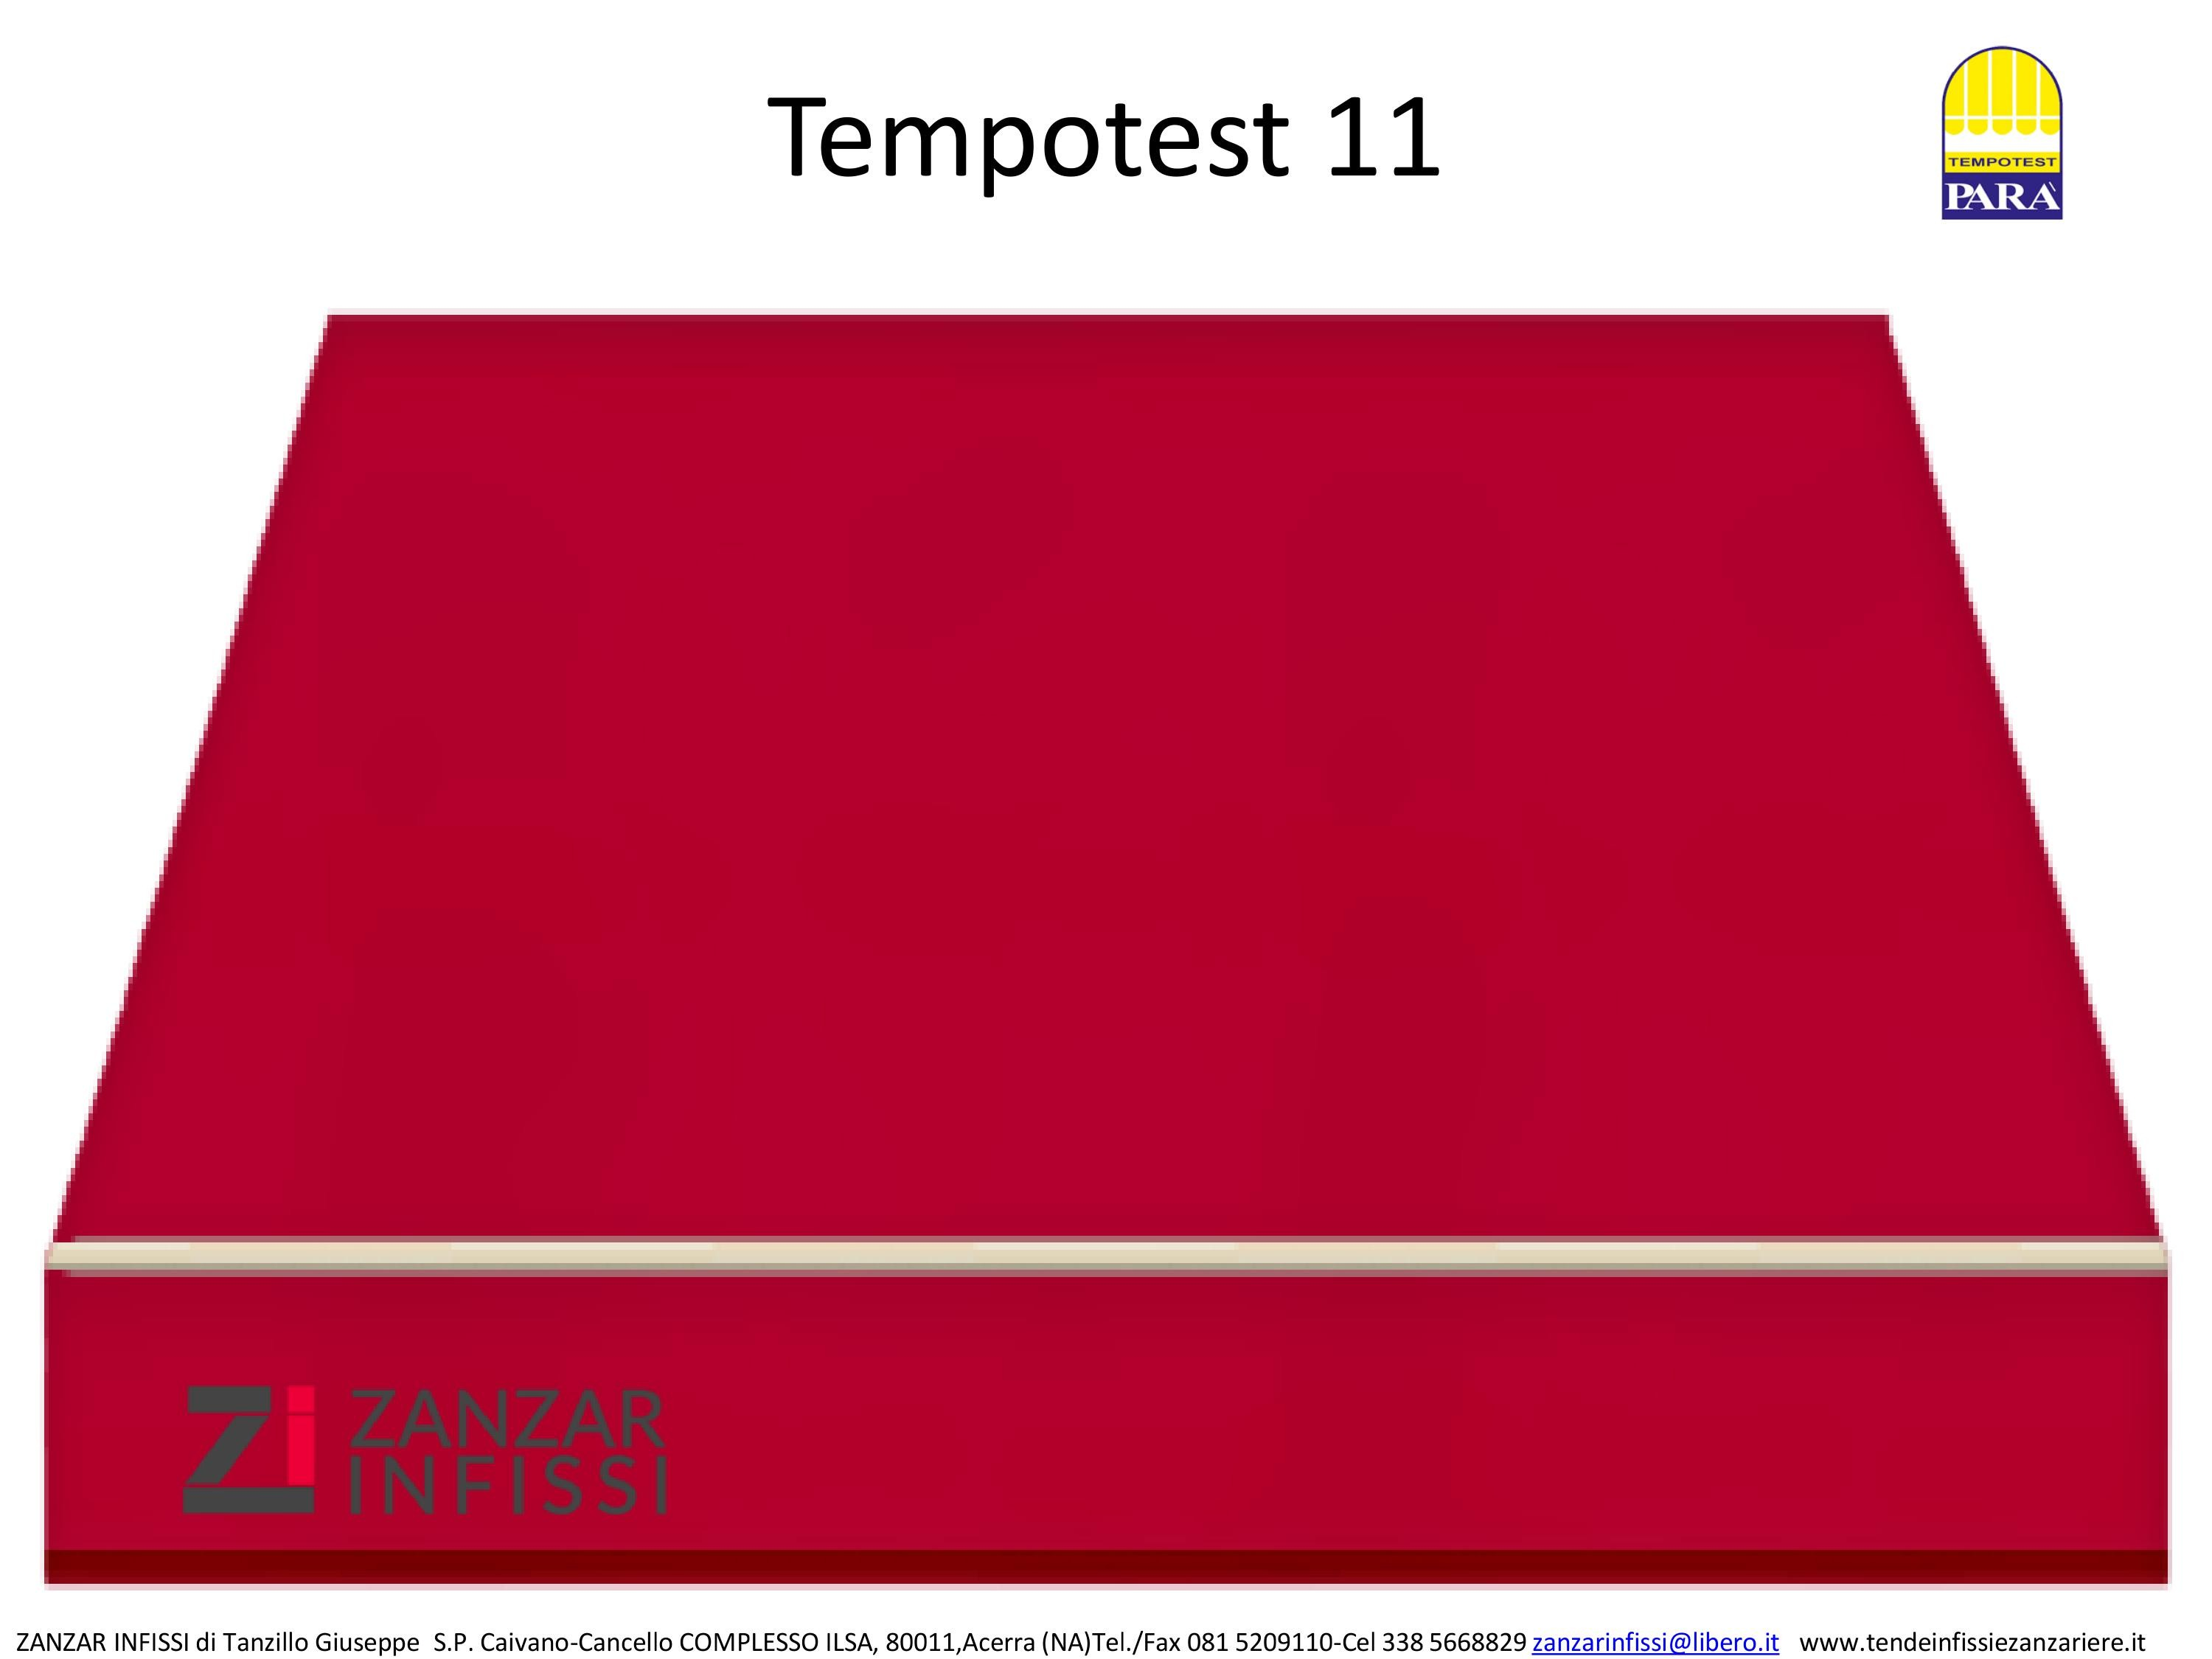 Tempotest 11